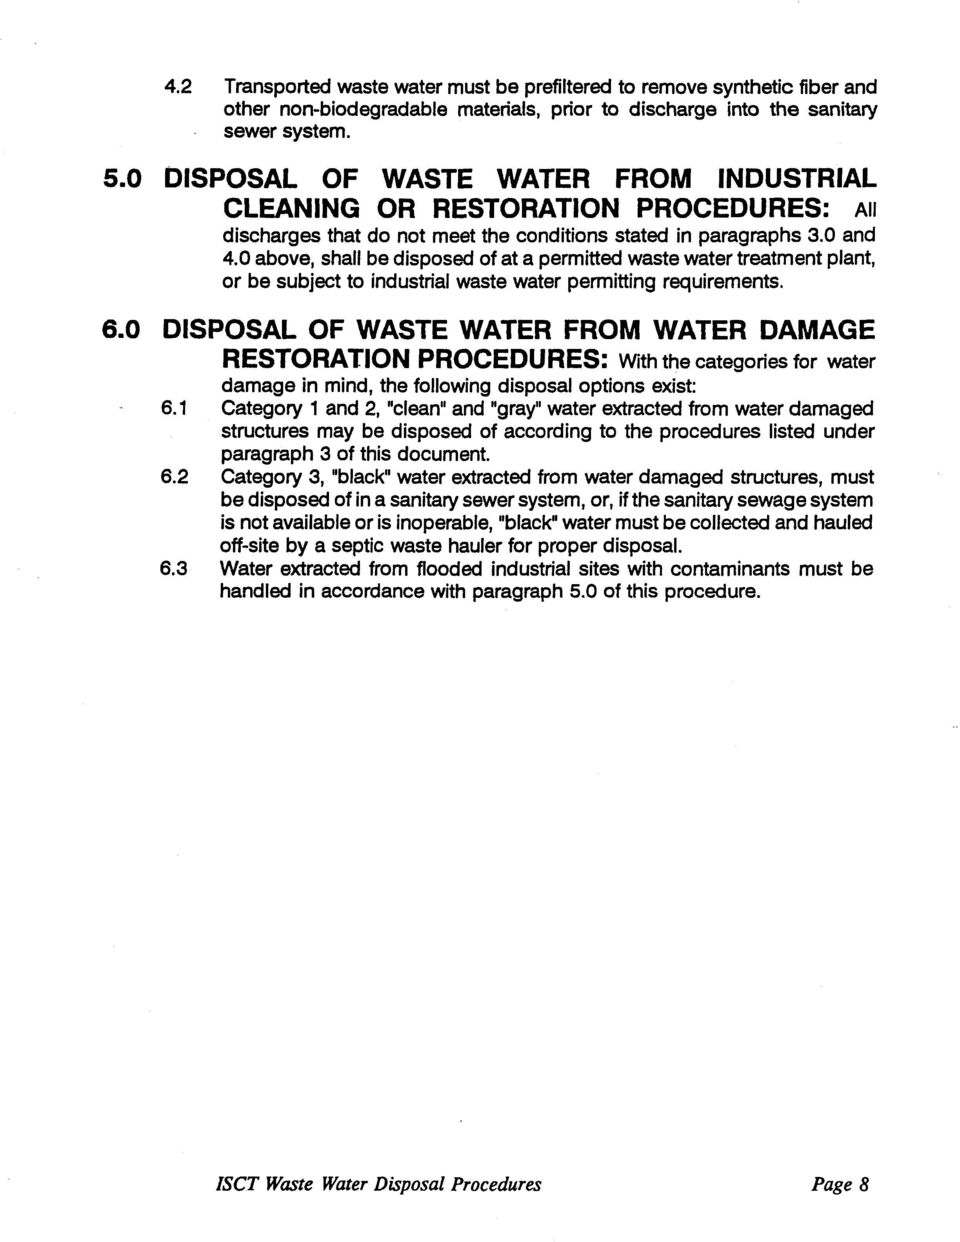 0 above, shall be disposed of at a permitted waste water treatment plant, or be subject to industrial waste water permitting requirements. 6.